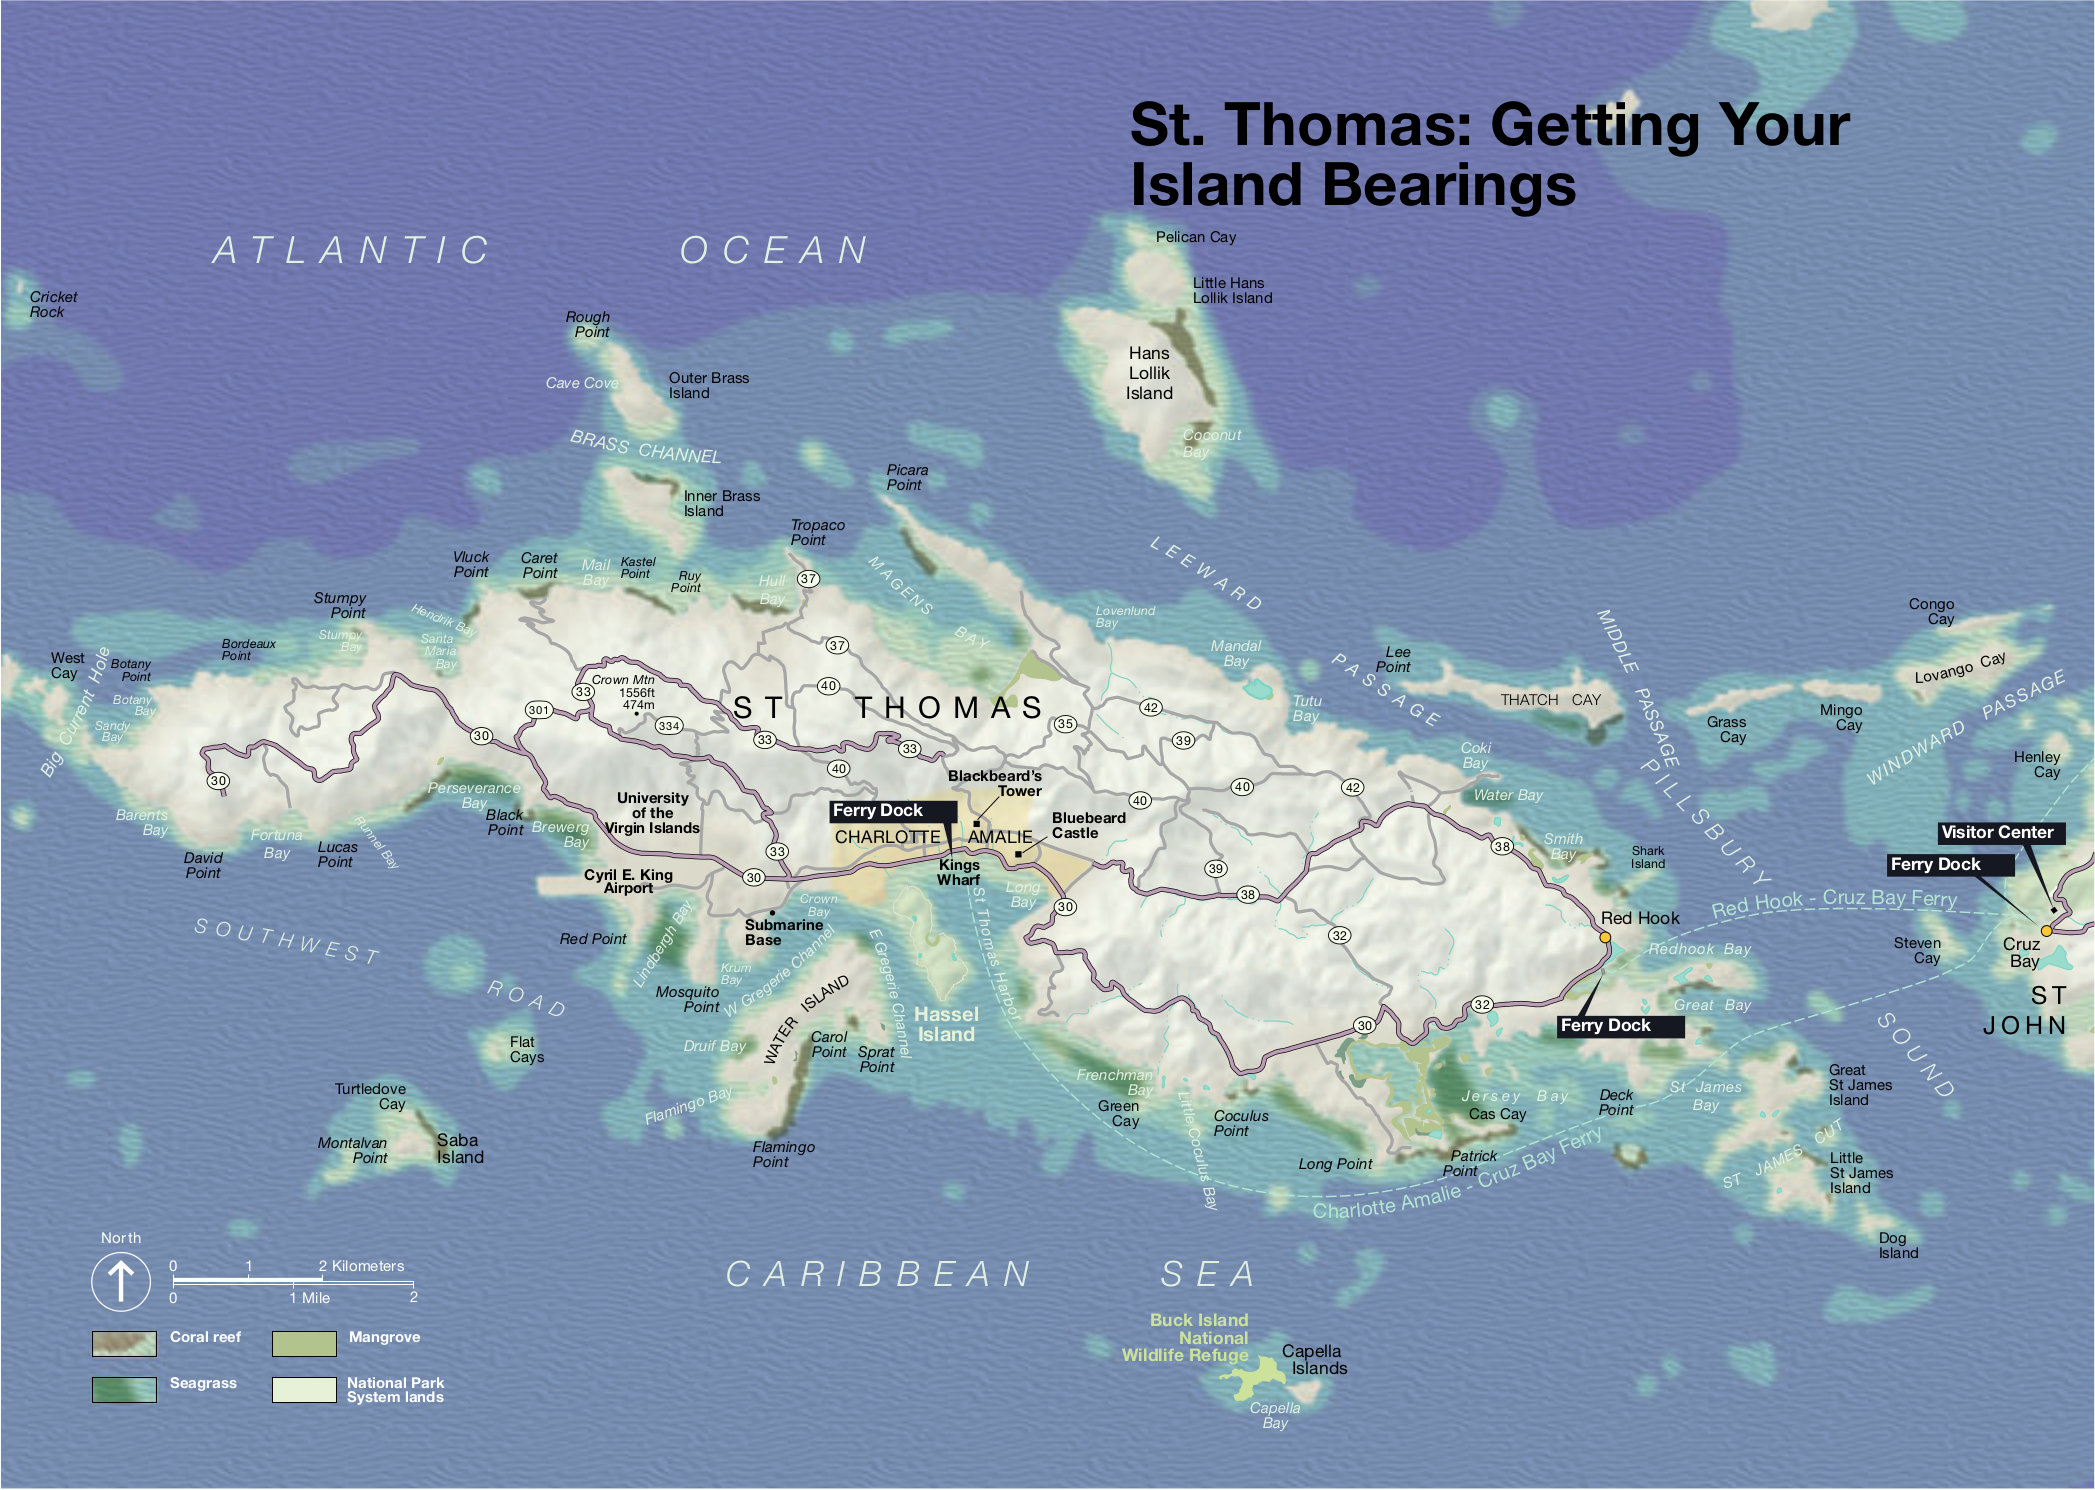 Virgin Islands Maps NPMapscom Just Free Maps Period - Islands map